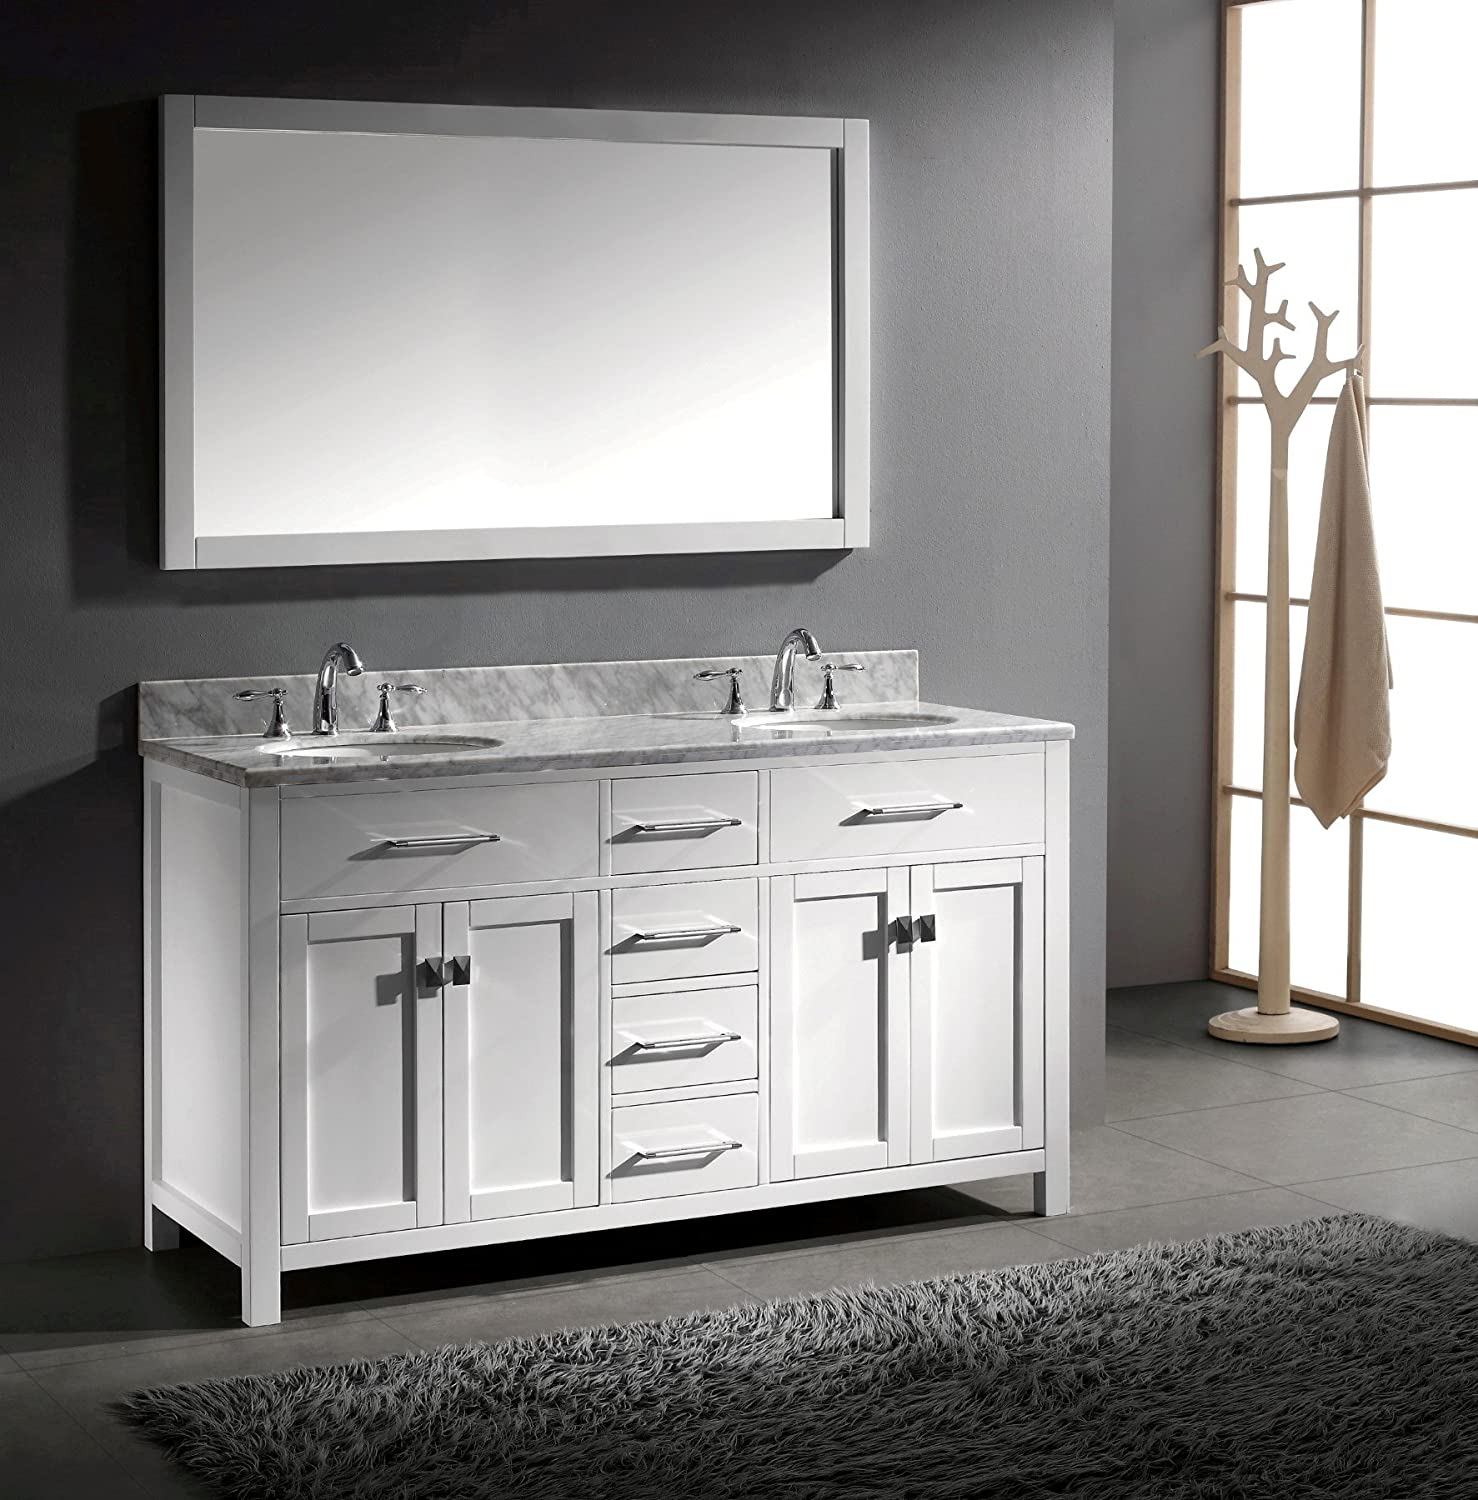 Virtu USA MD 2060 WMRO WH Caroline 60 Inch Bathroom Vanity with Double  Round Sinks in White and Italian Carrera White Marble     Amazon com. Virtu USA MD 2060 WMRO WH Caroline 60 Inch Bathroom Vanity with